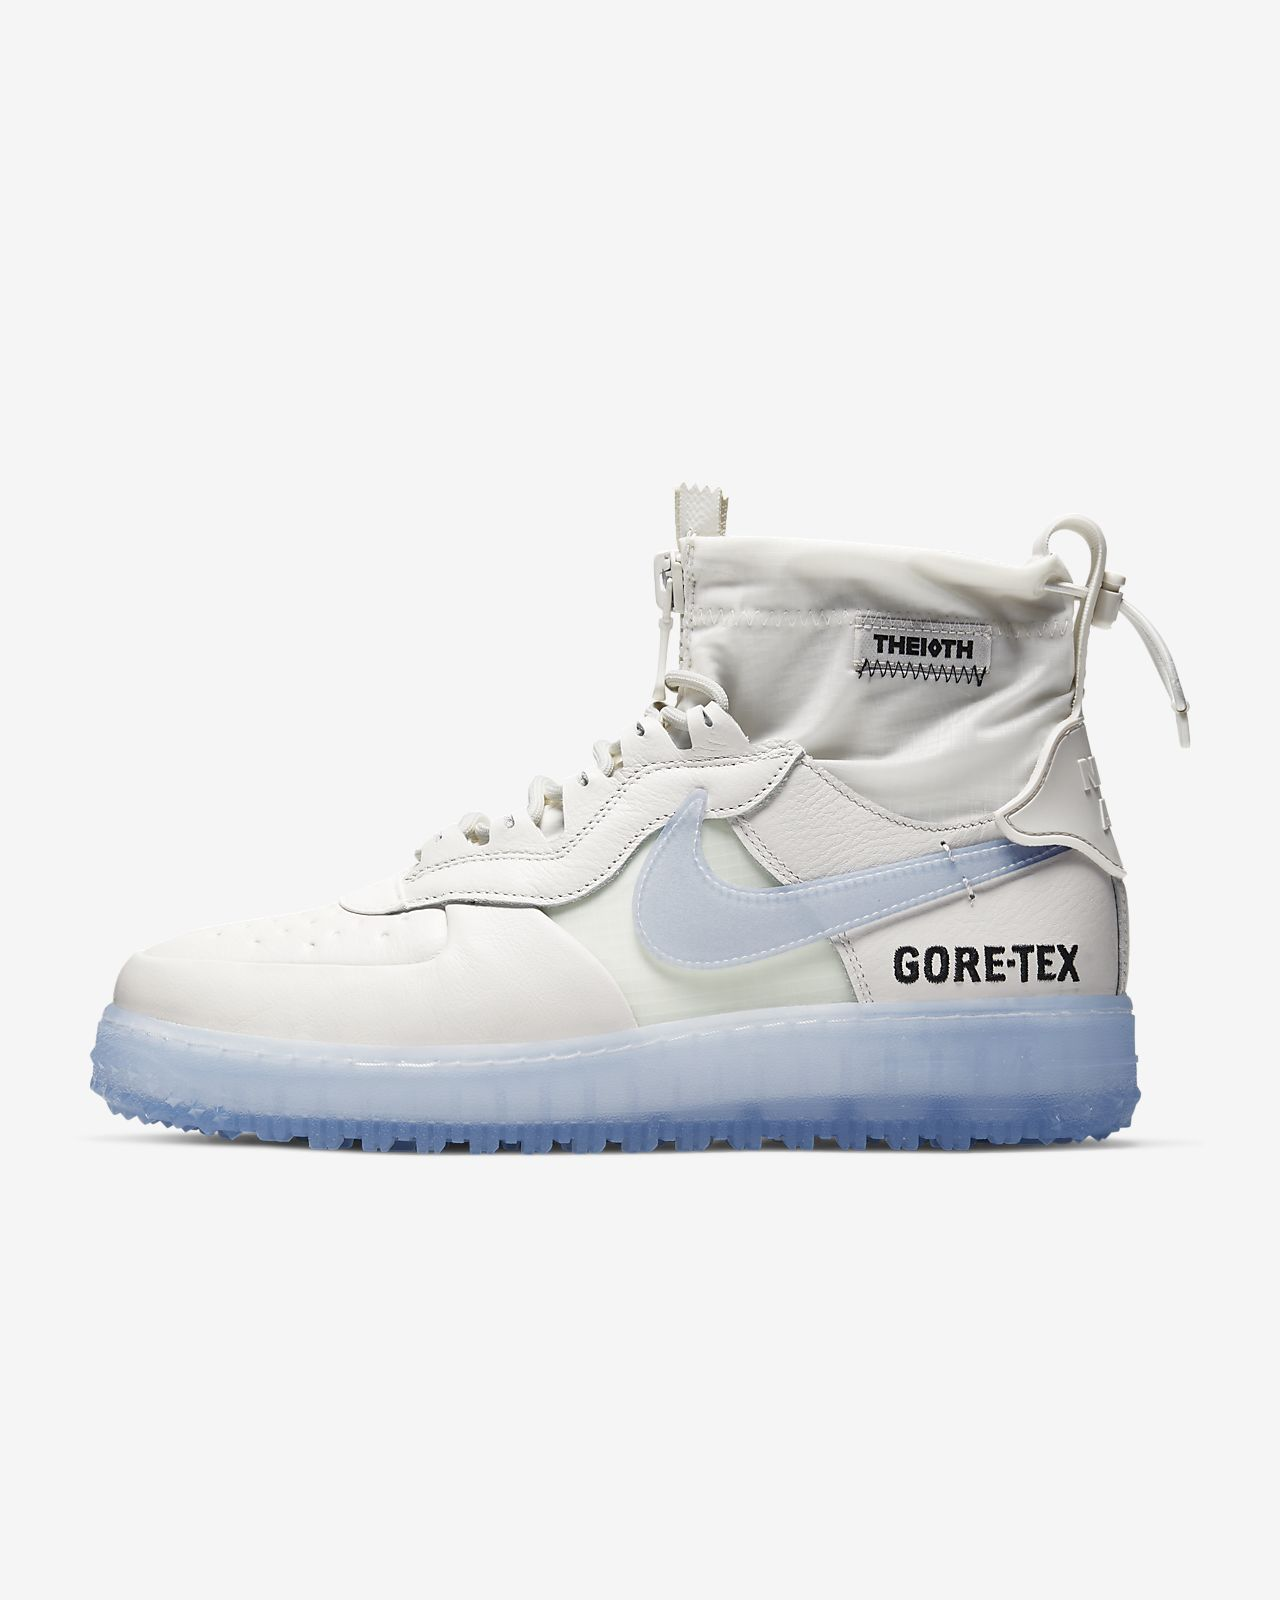 Nike Air Force 1 Winter GORE-TEX høye sko